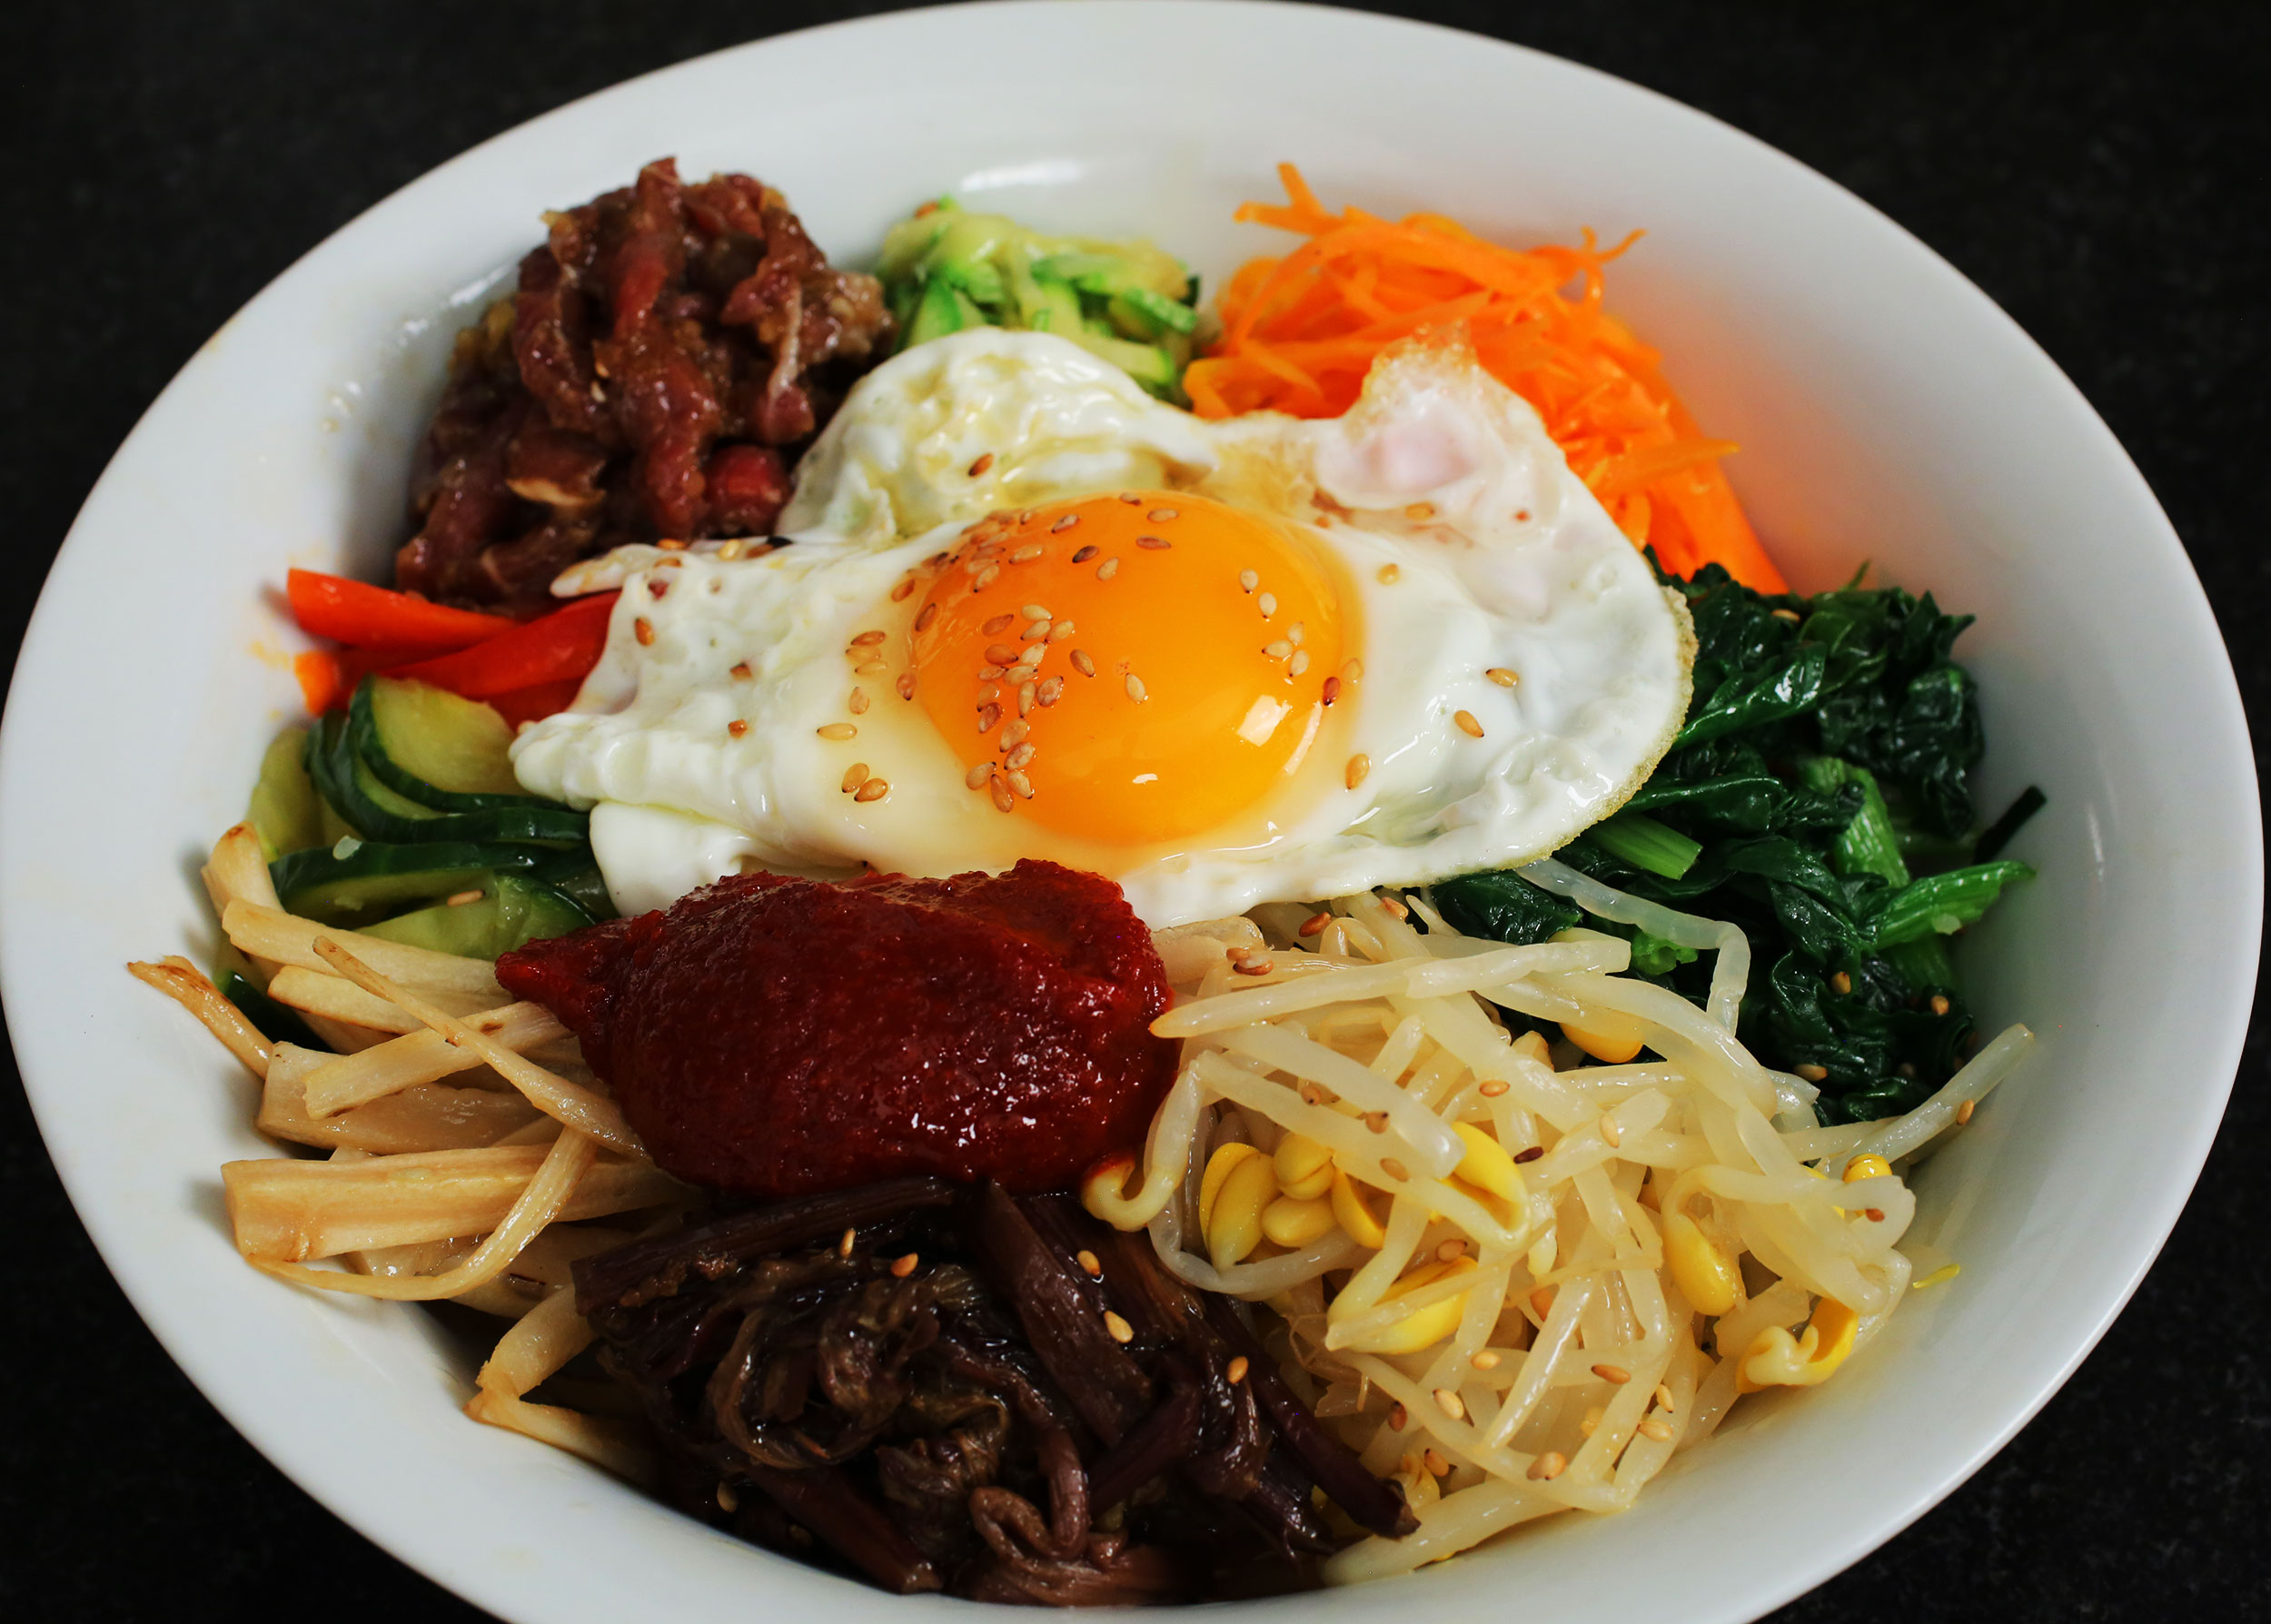 Bibimbap (Mixed rice with vegetables) recipe - Maangchi.com